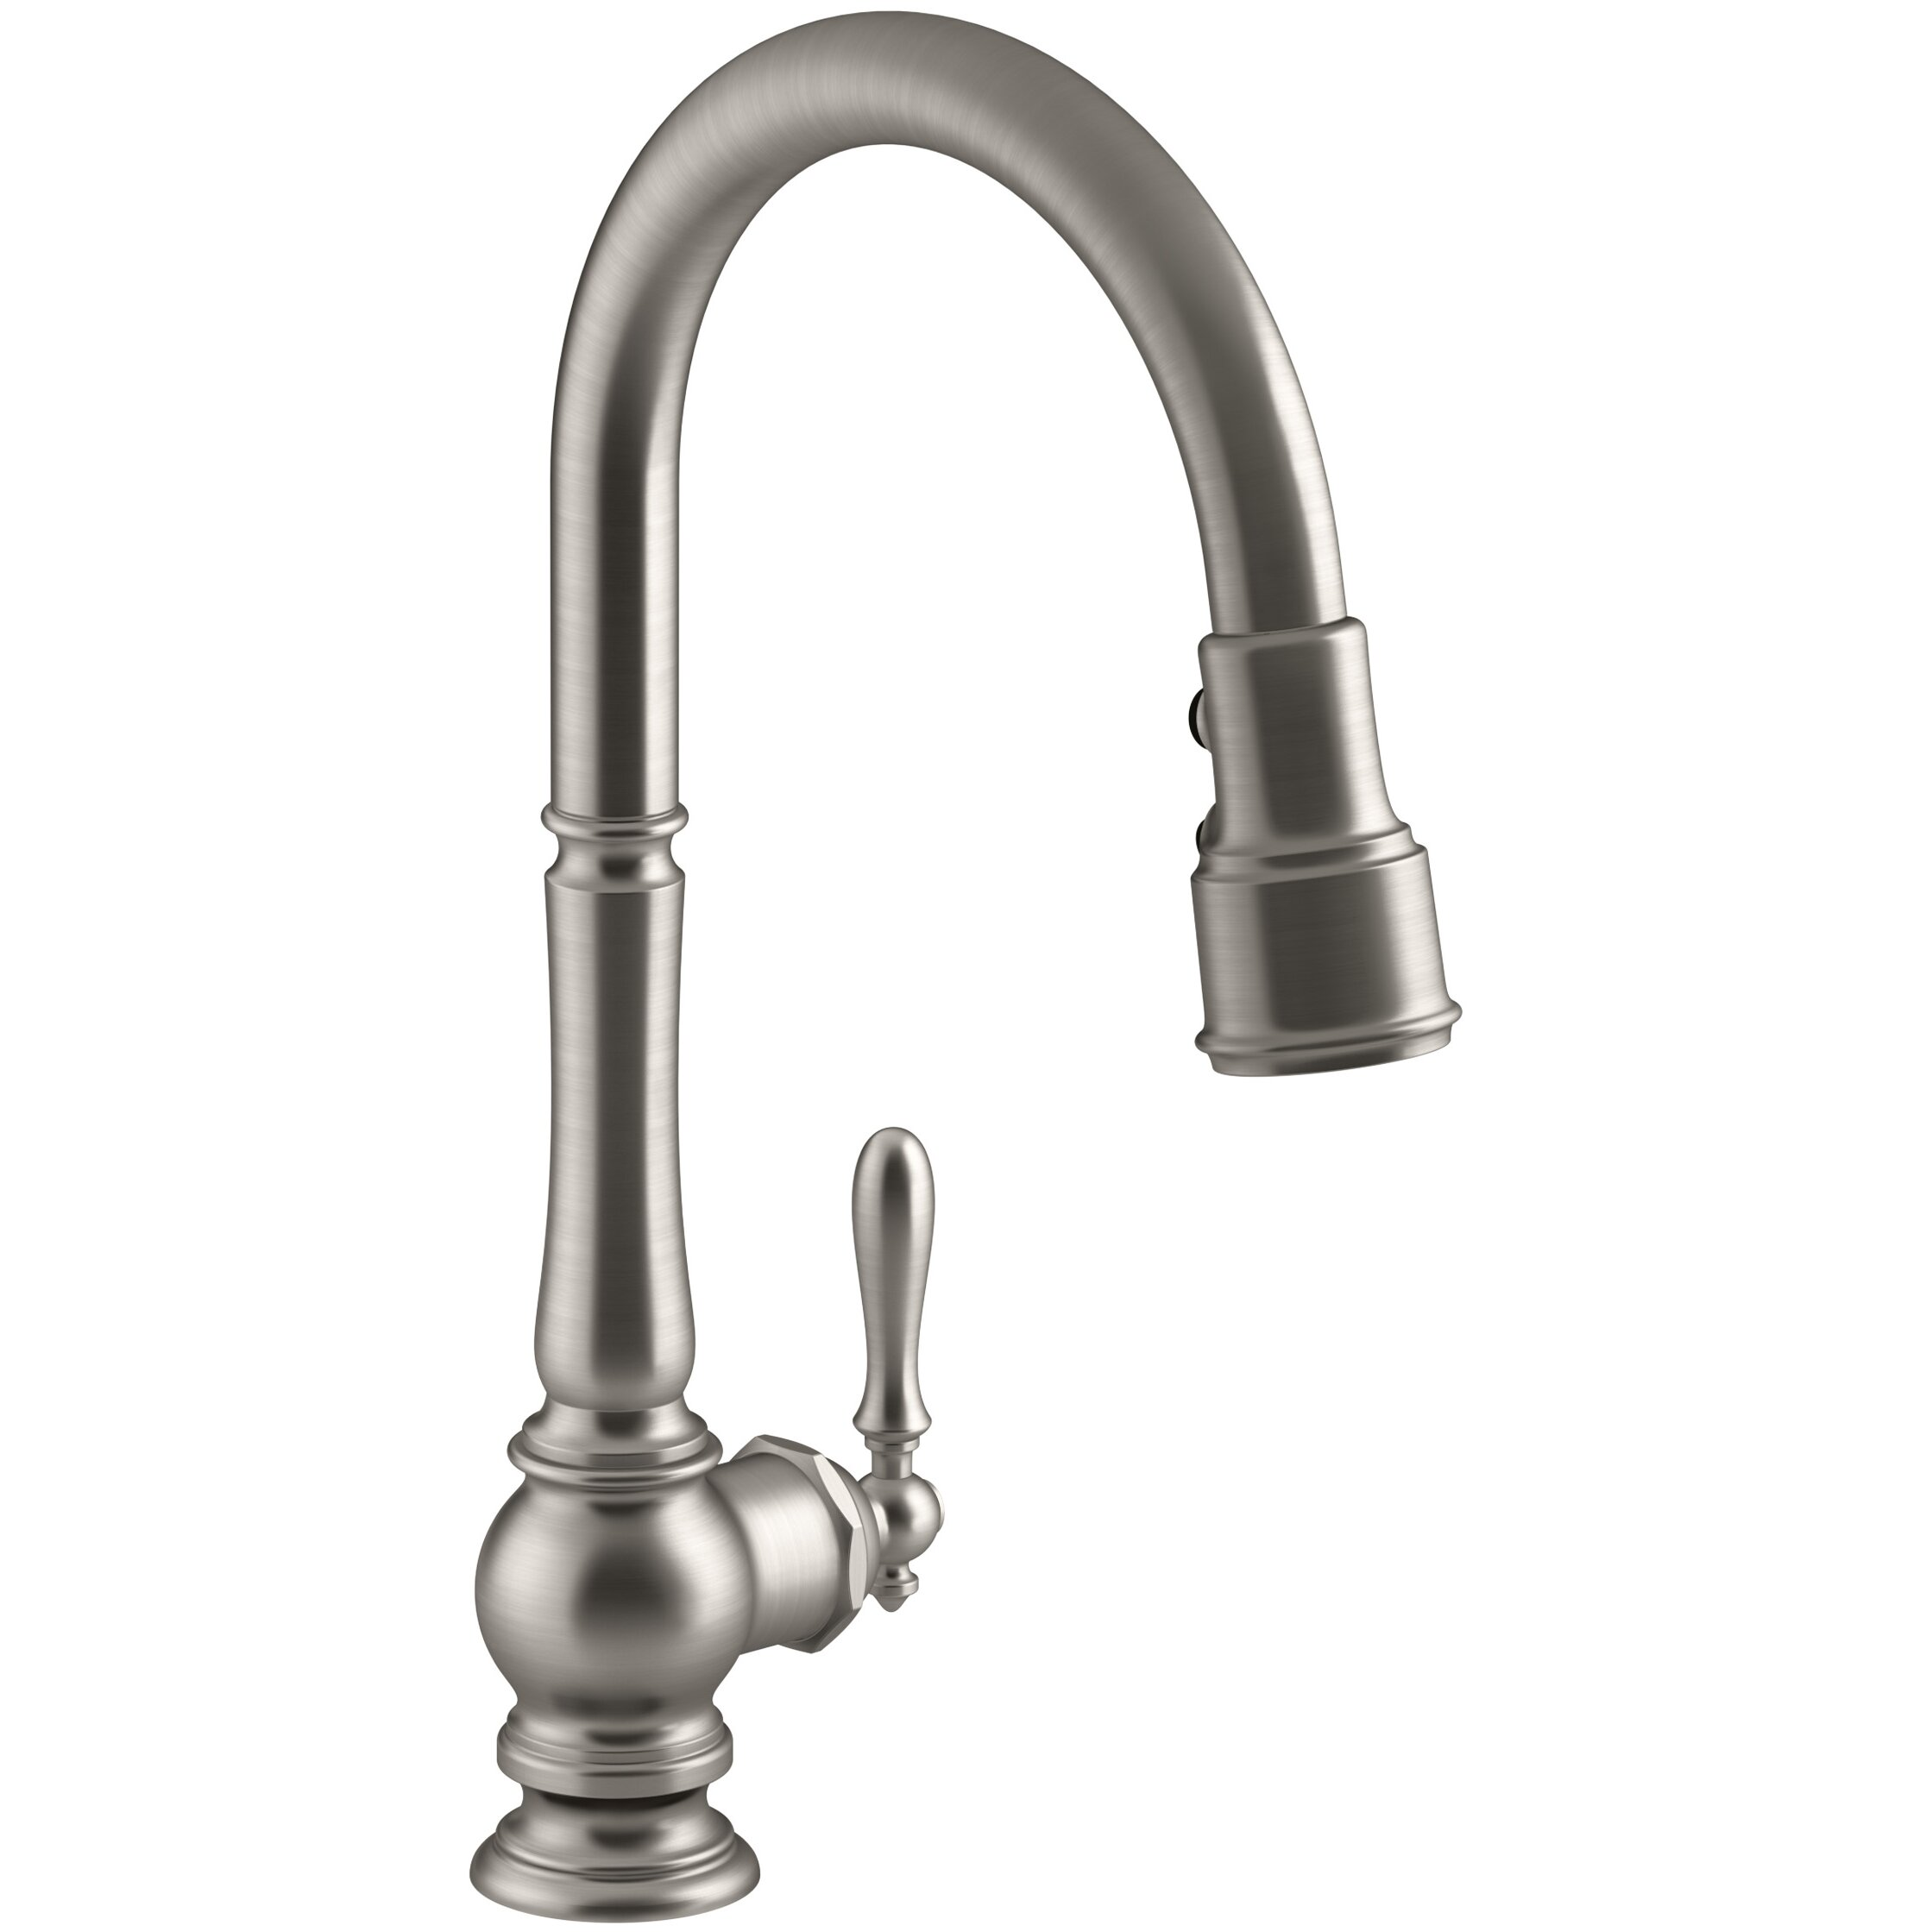 Kohler Faucet Reviews : Kohler Artifacts Single-Hole Kitchen Sink Faucet with Pull-Down Spout ...